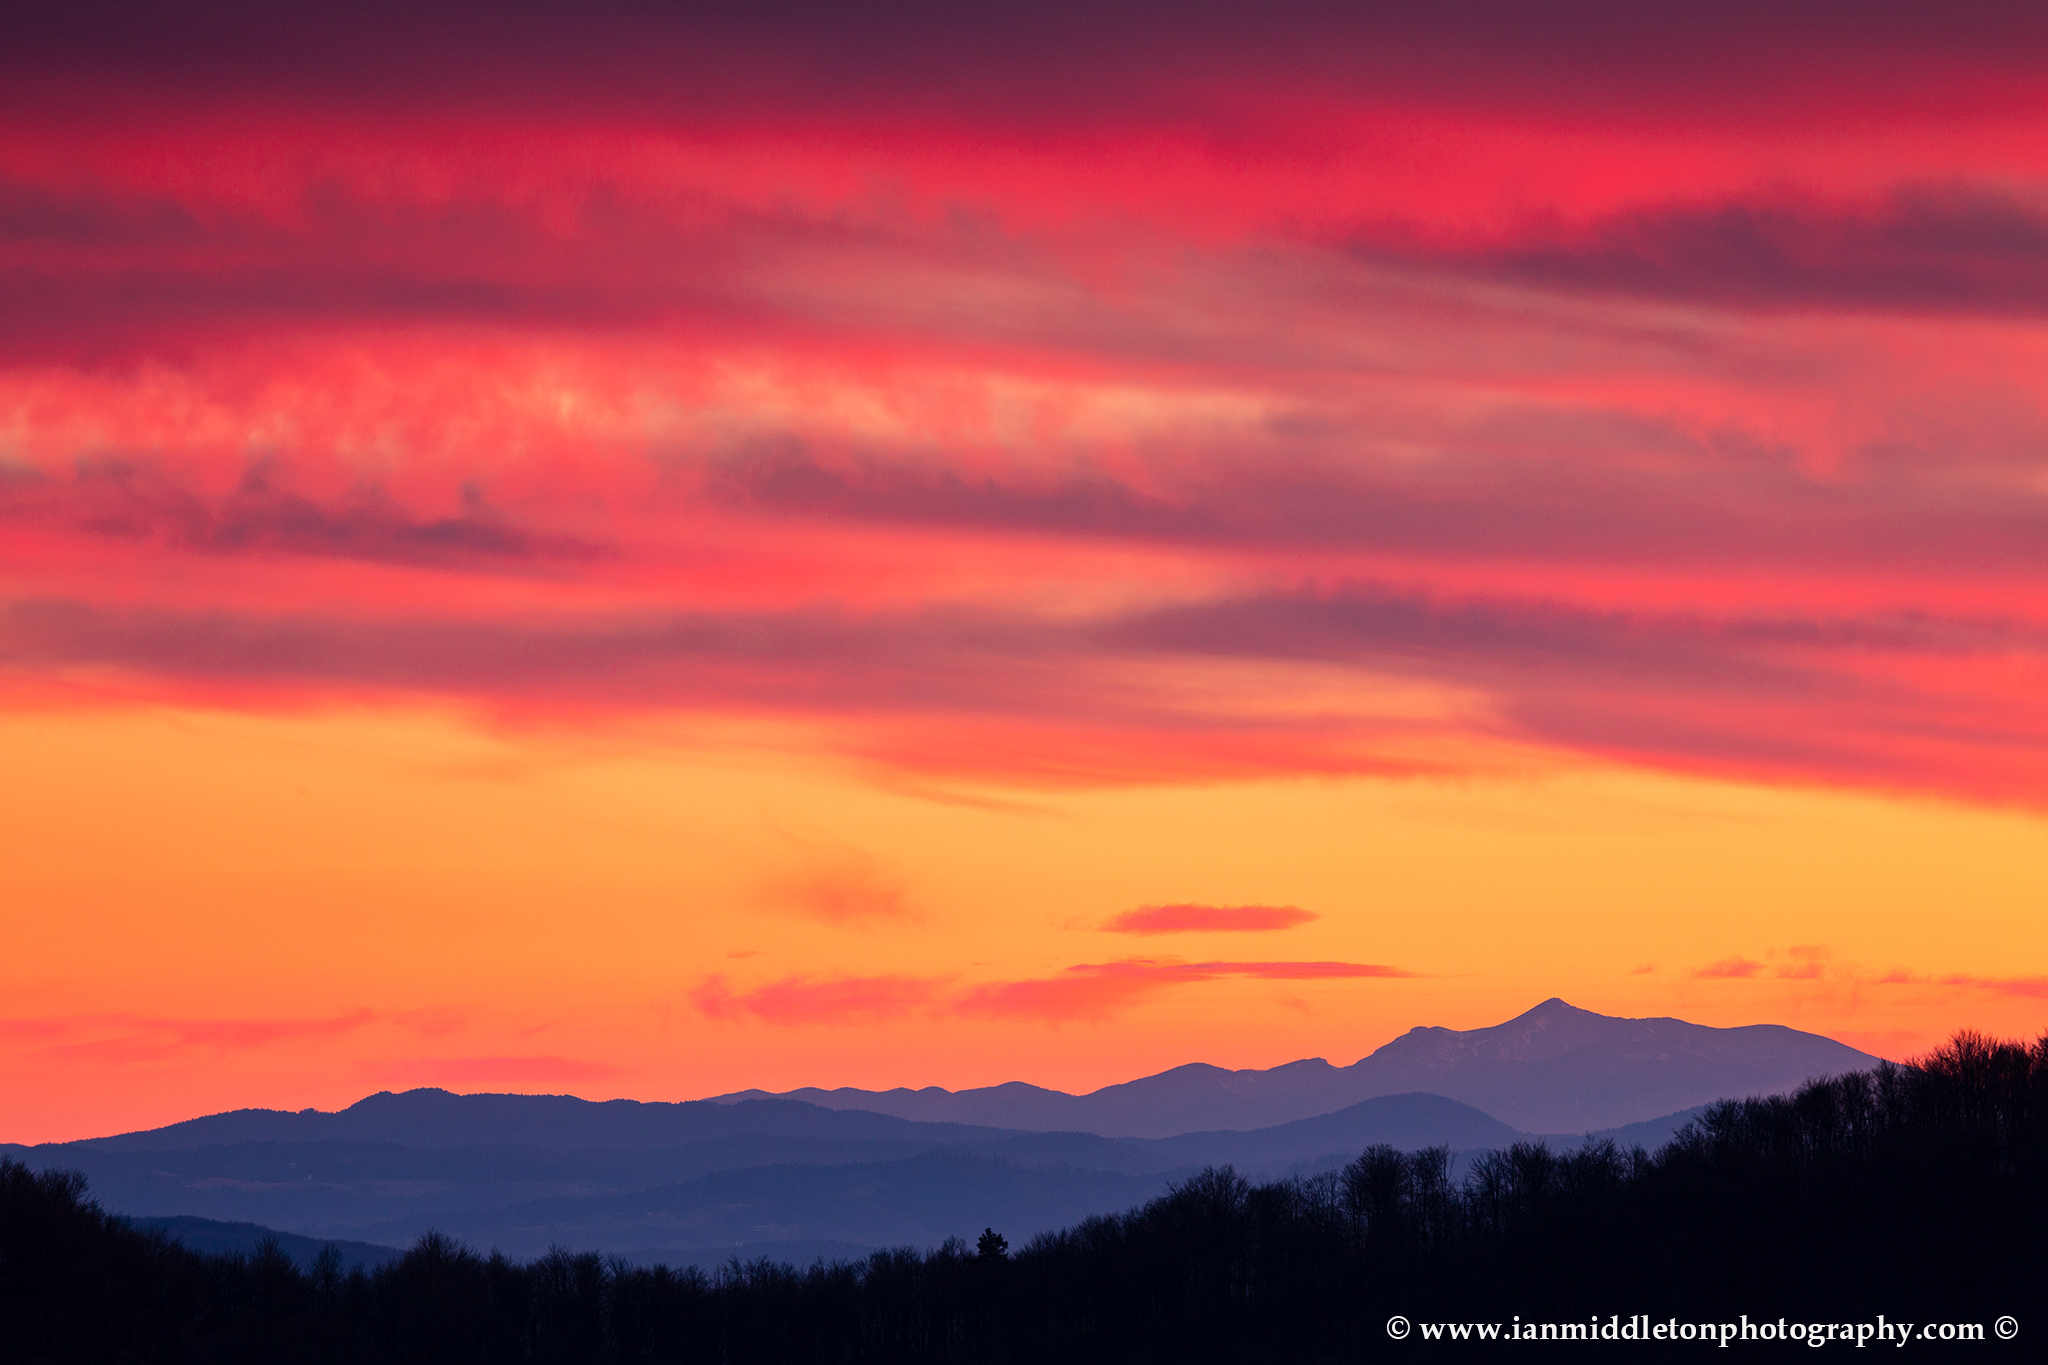 View across to the Sneznik mountain at sunset, seen from a hill in prezganje in the Jance hills to the east of Ljubljana, Slovenia